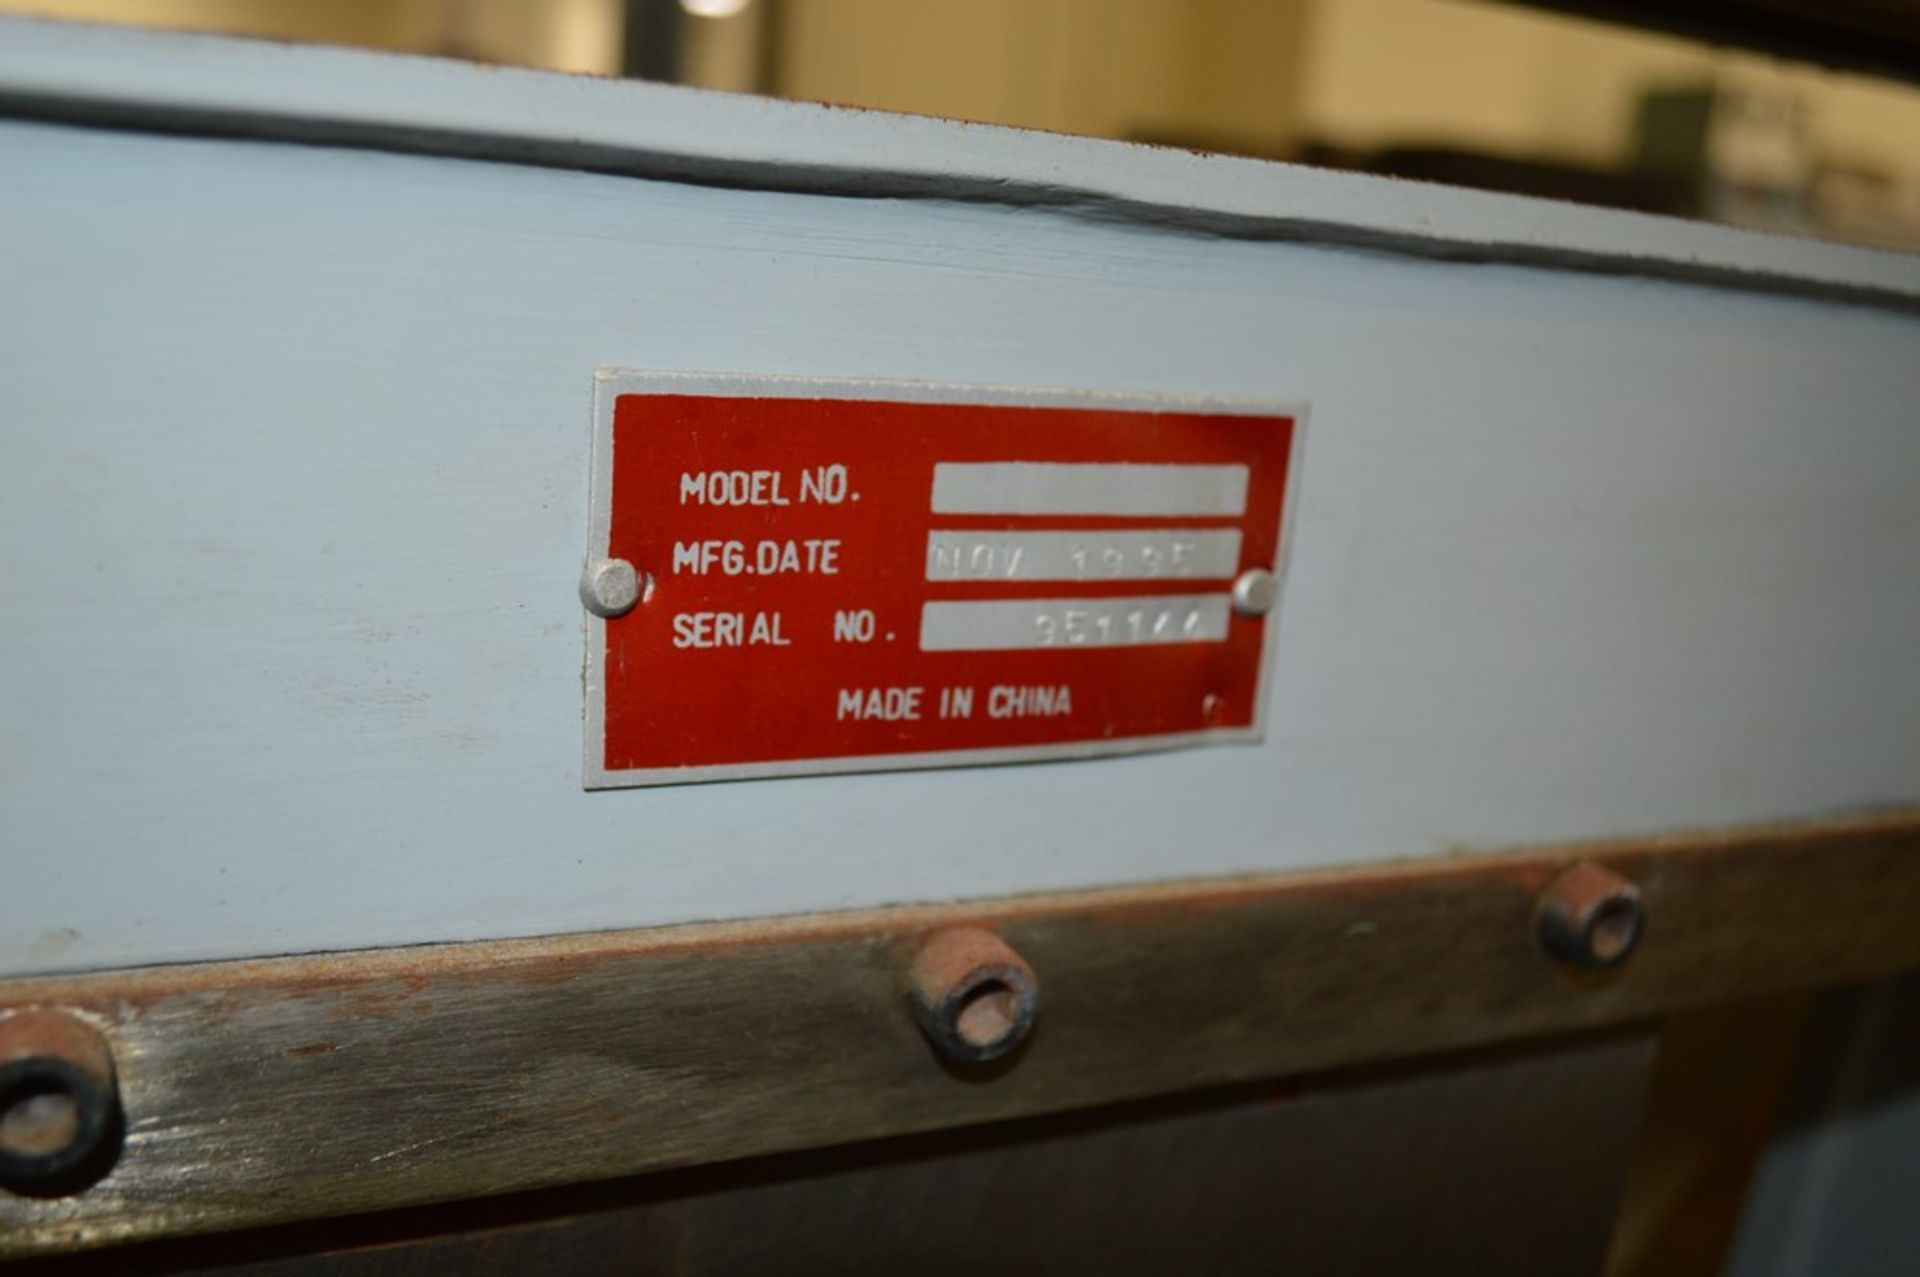 1995 Combined Manual Shear and Break black metal stand, metal rolls, (4 Each) Henrich/Pexto Model- - Image 6 of 8